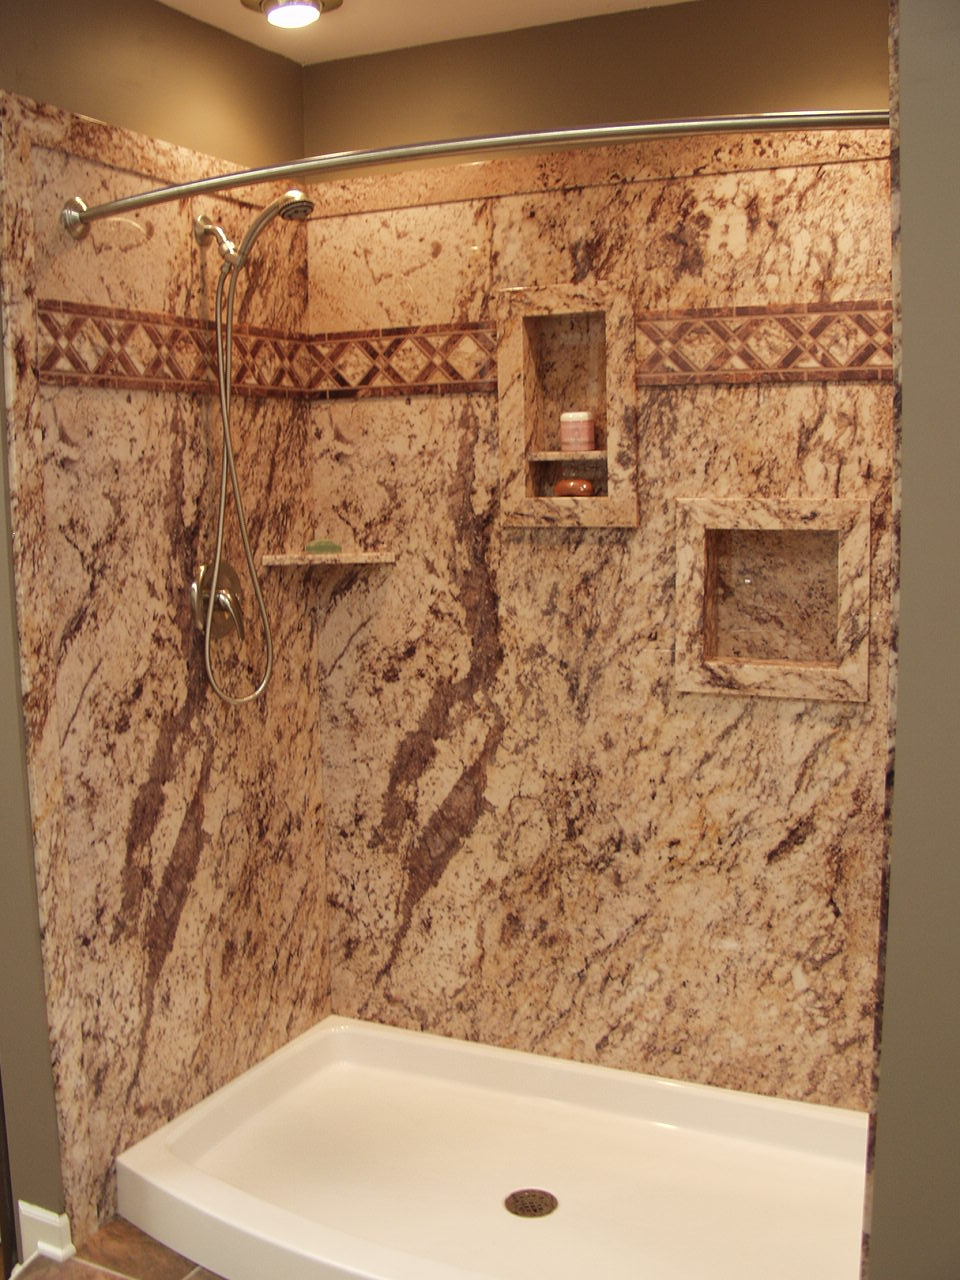 New Diy Shower And Tub Wall Panel Kits From Innovate